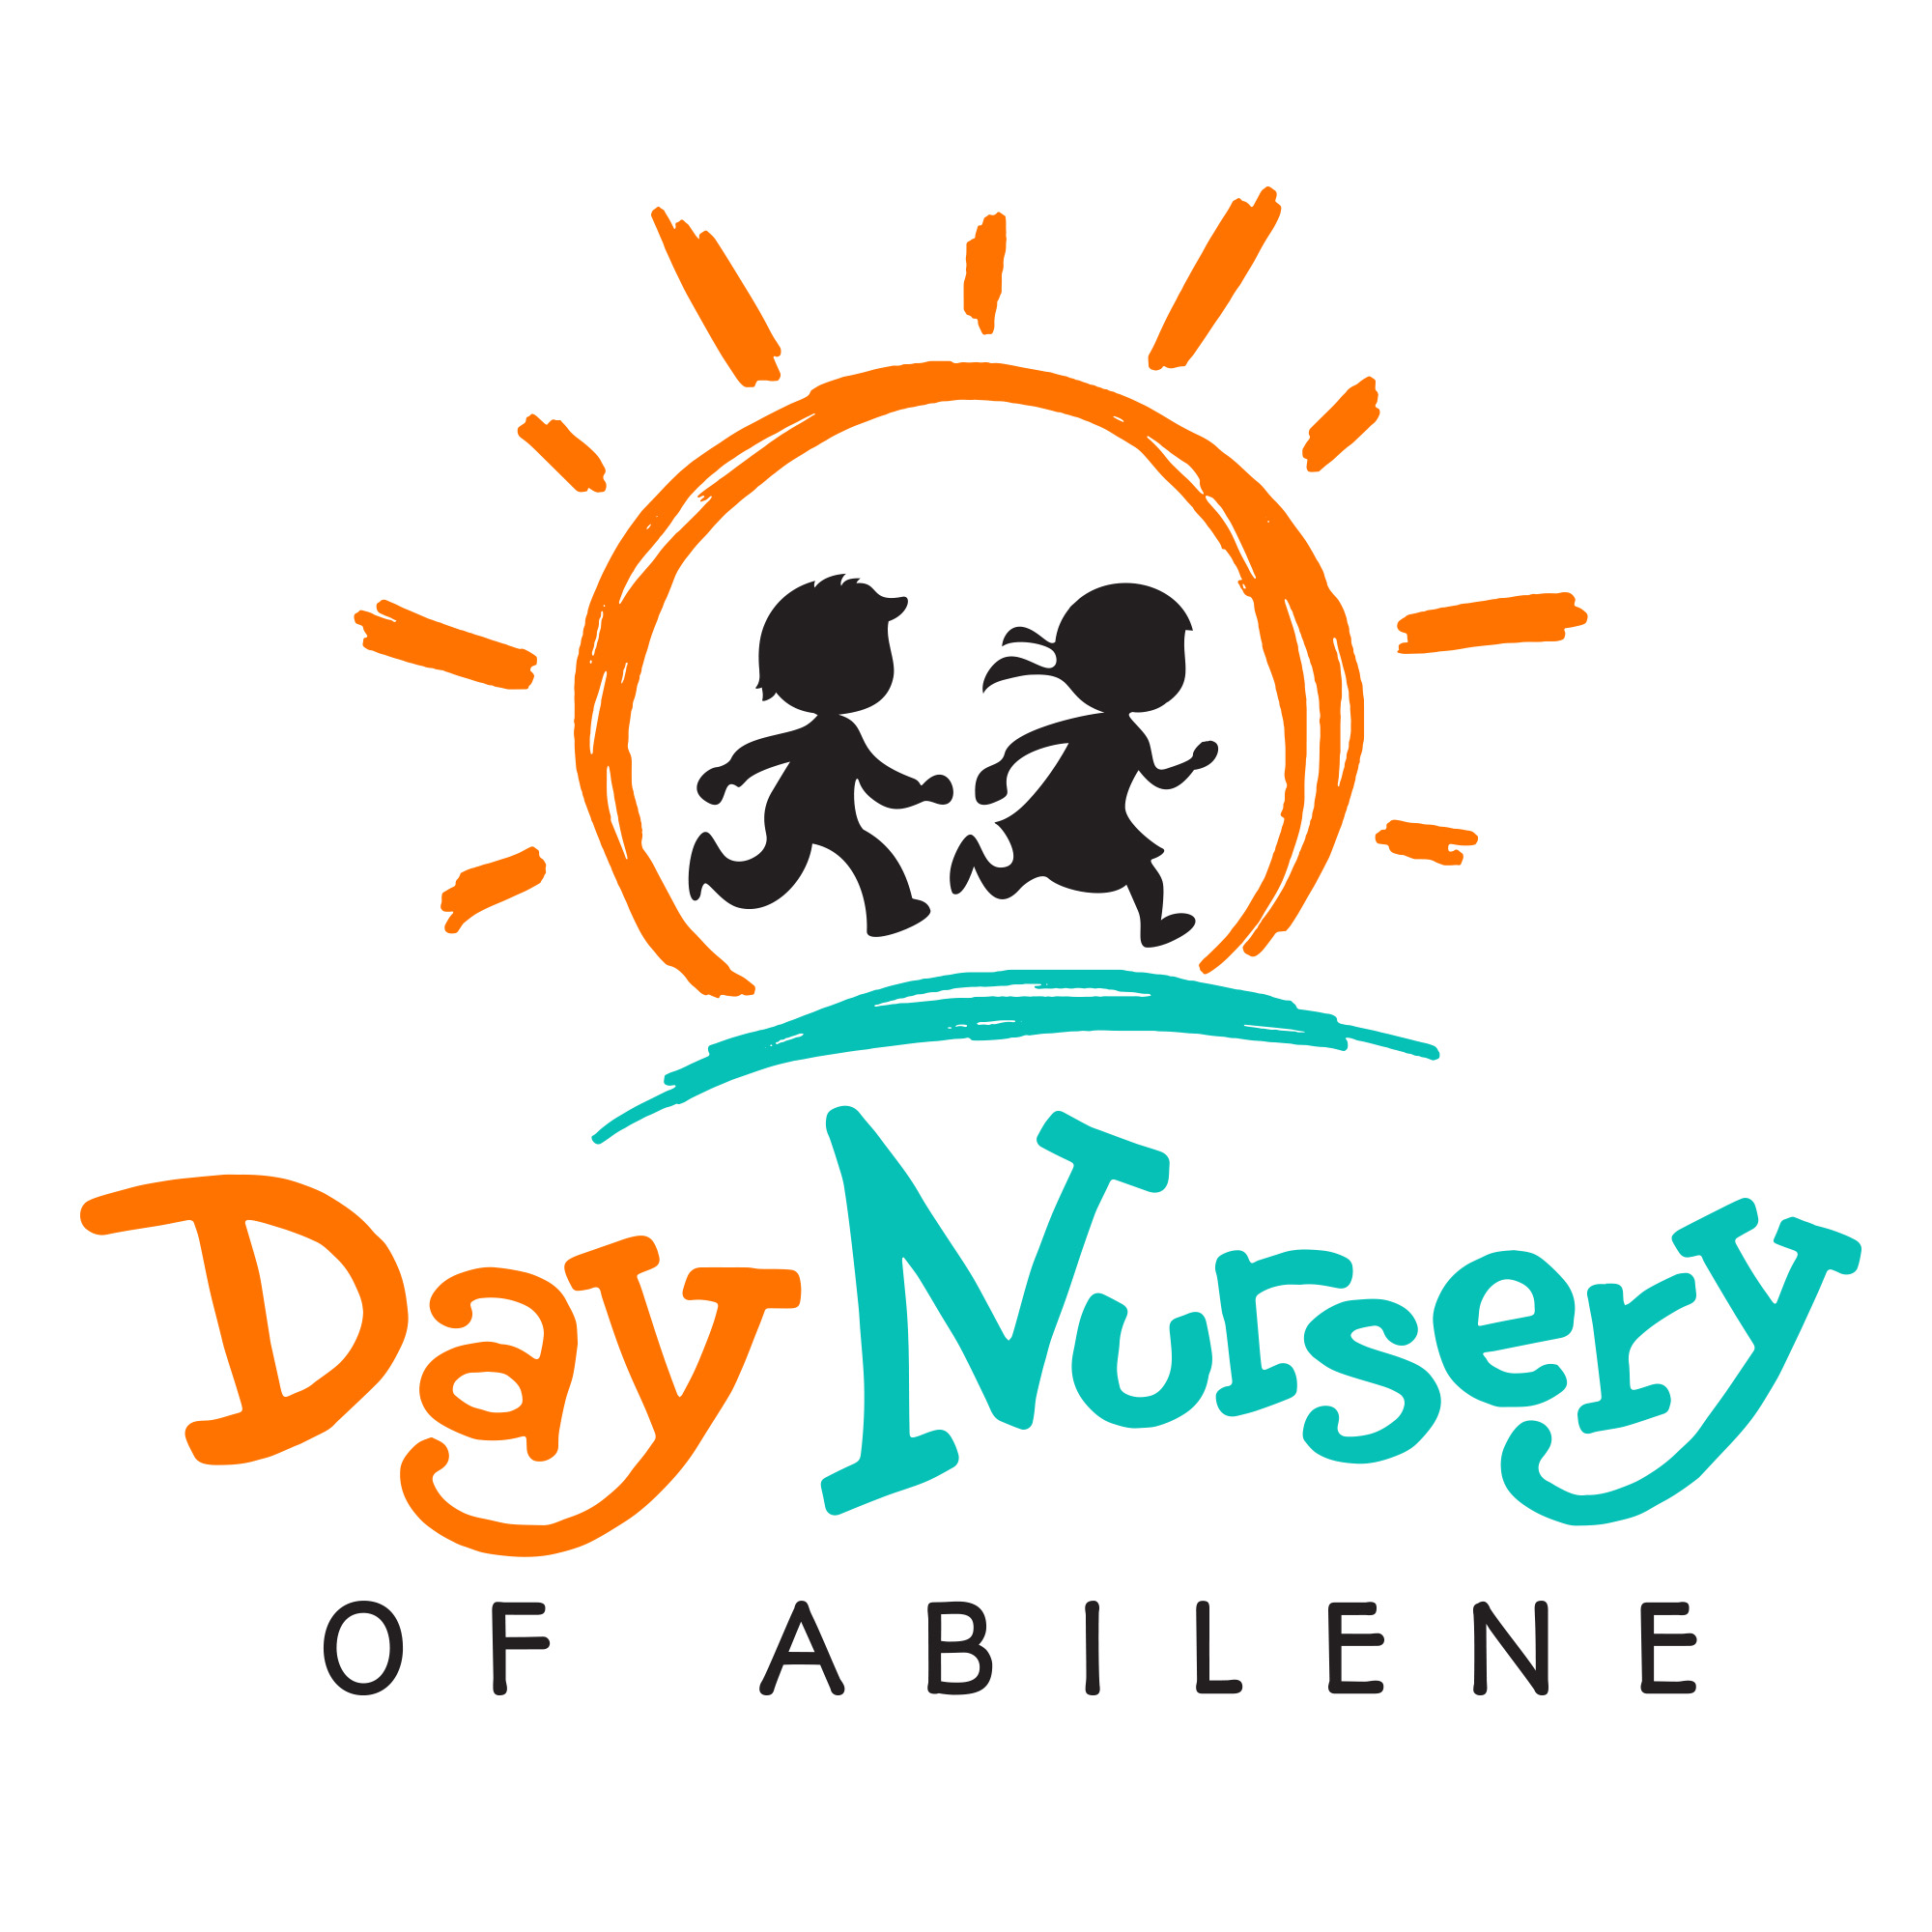 Day Nursery Logo Color - ORIGINAL